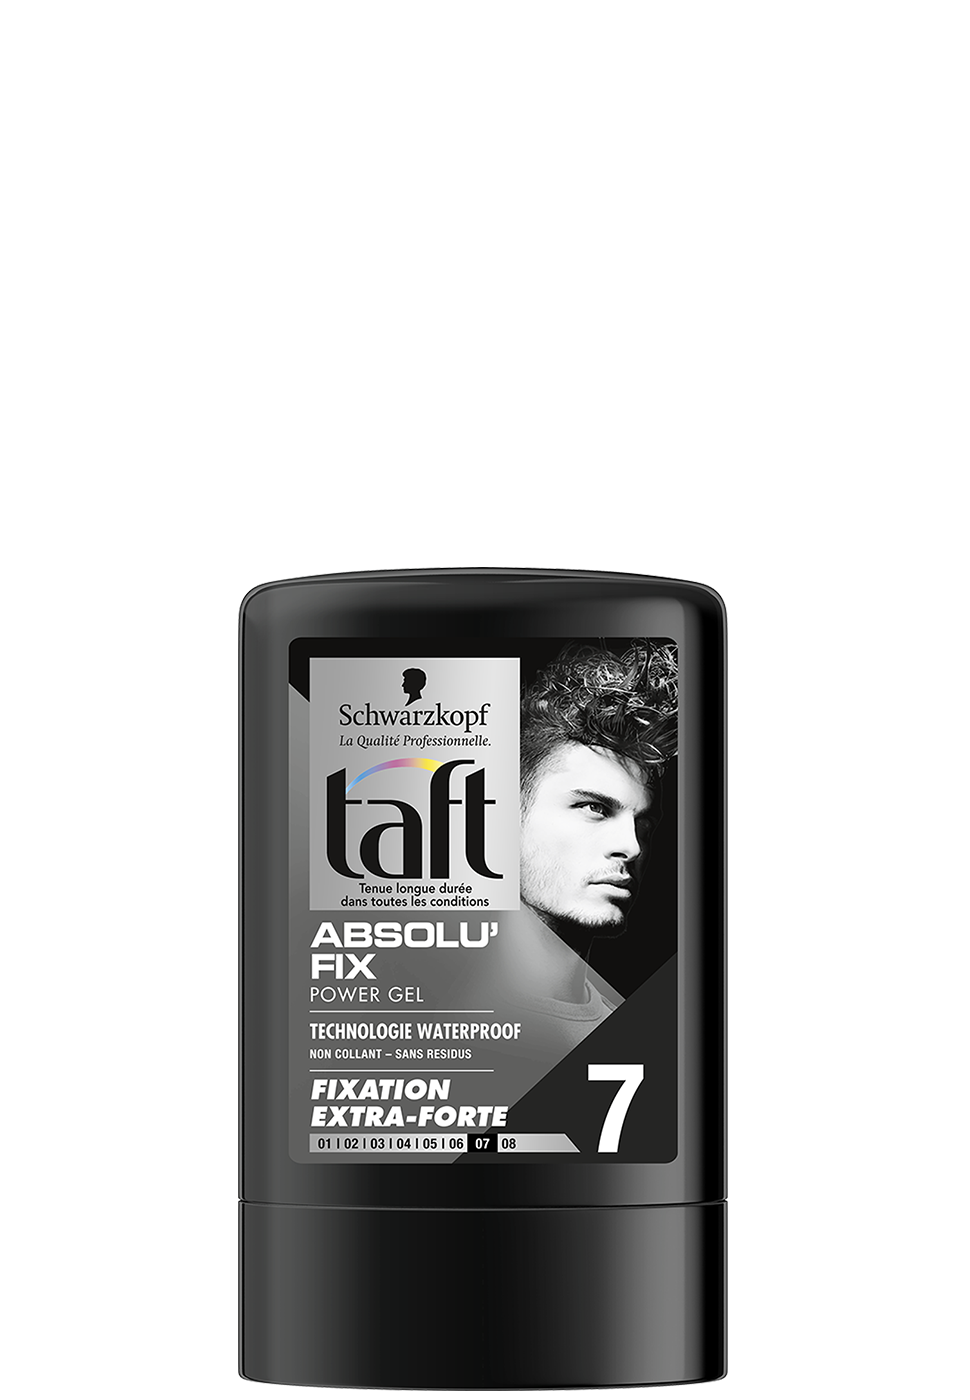 taft_gel_tube_absolu_fix_7